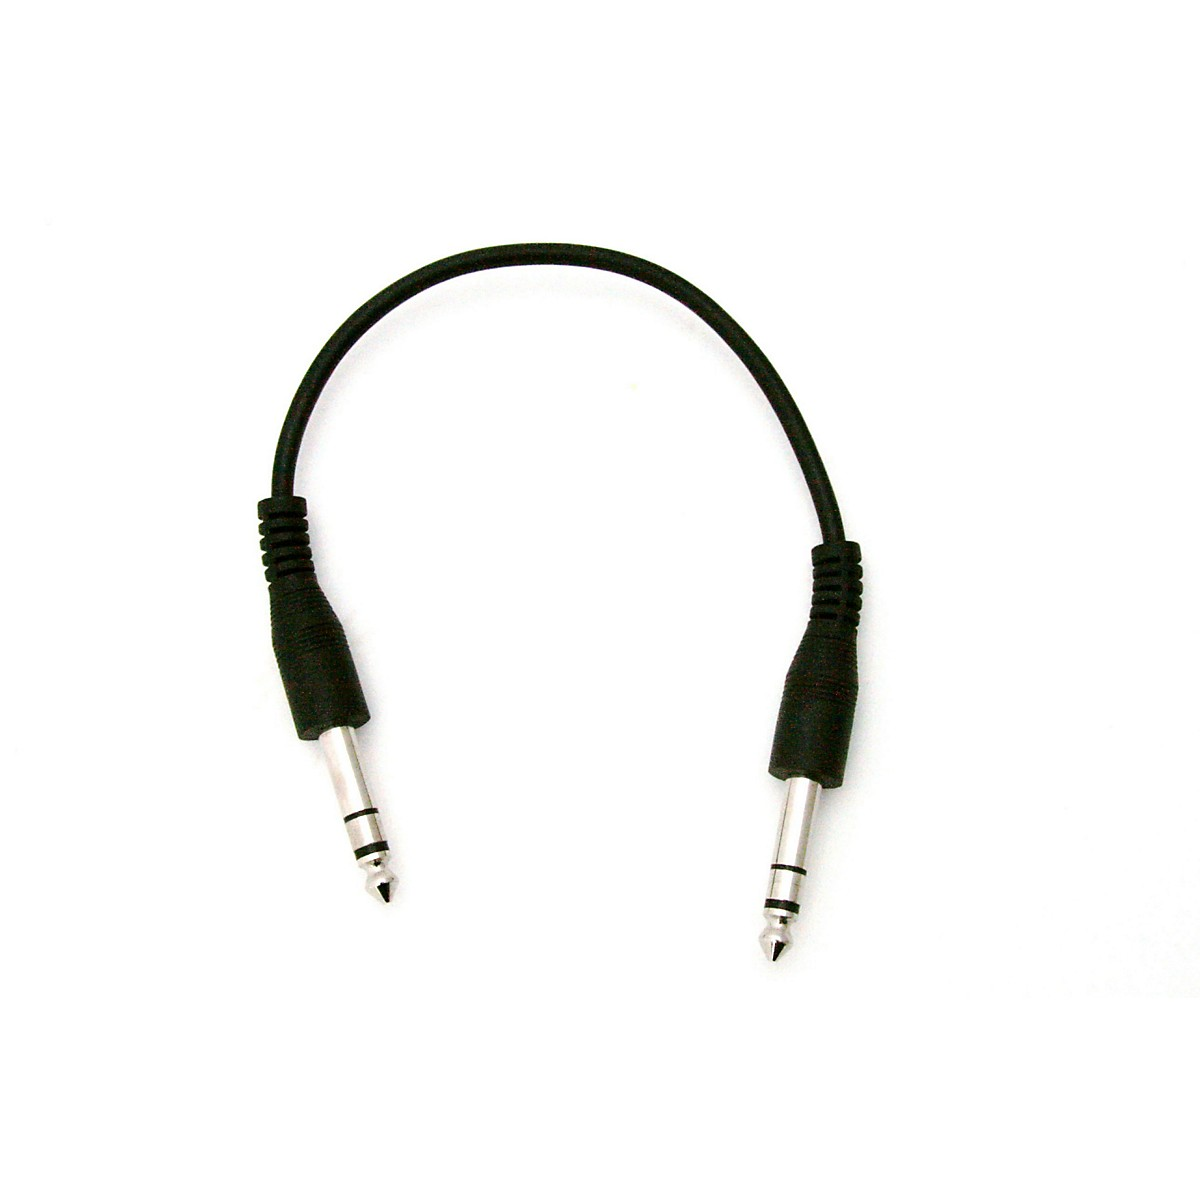 AirTurn AT-104 to FS-5 Cable (One Each)